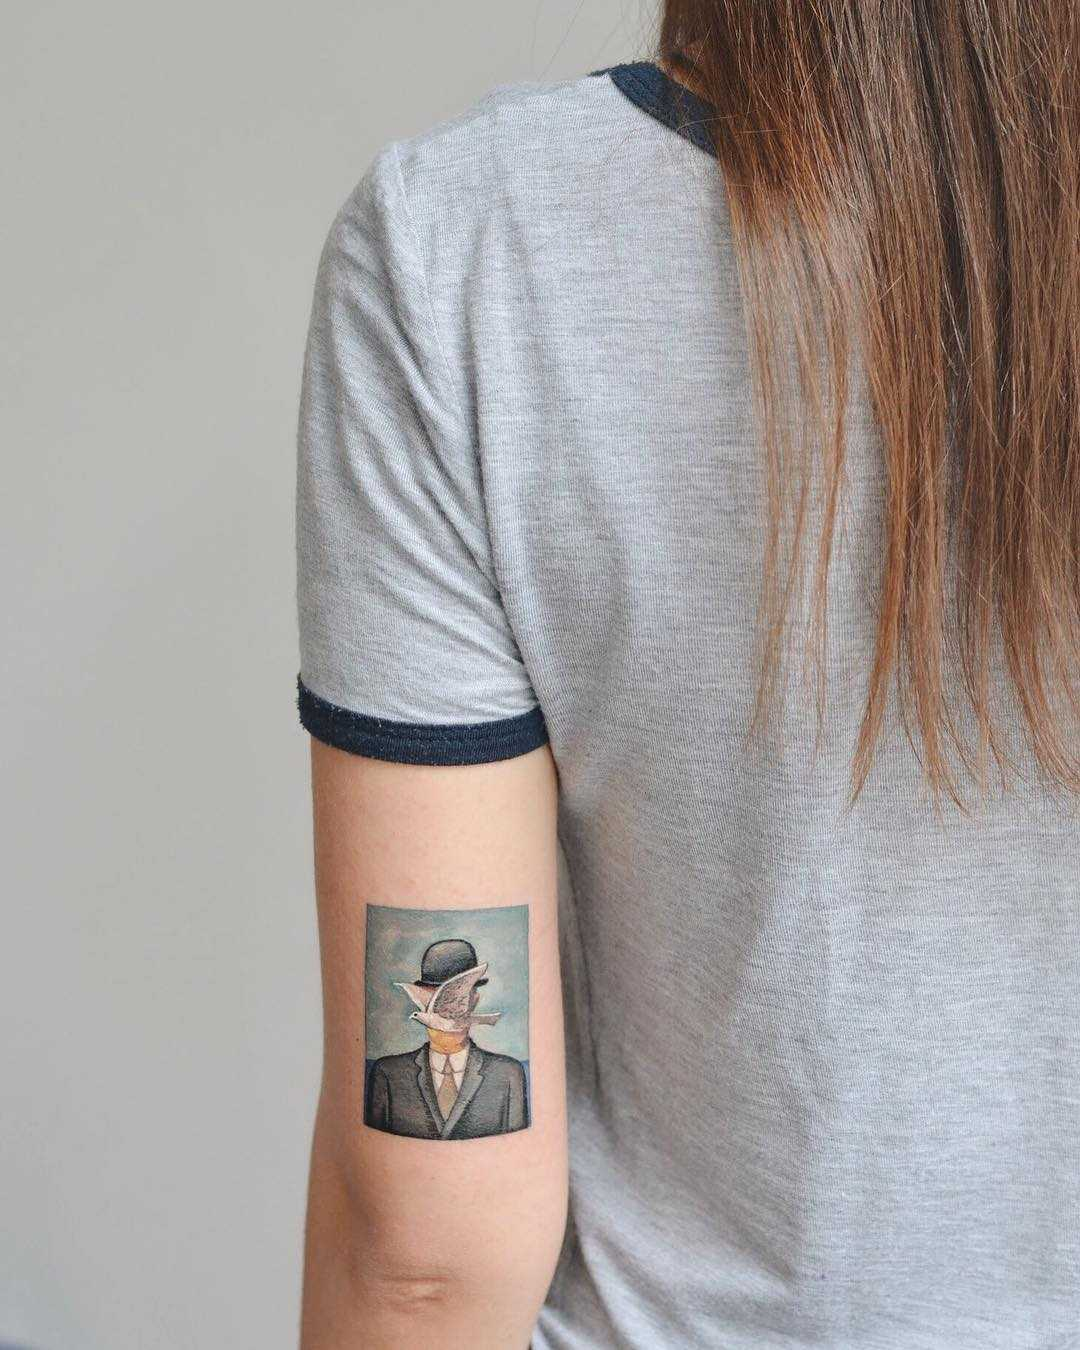 The Son of Man by René Magritte tattoo